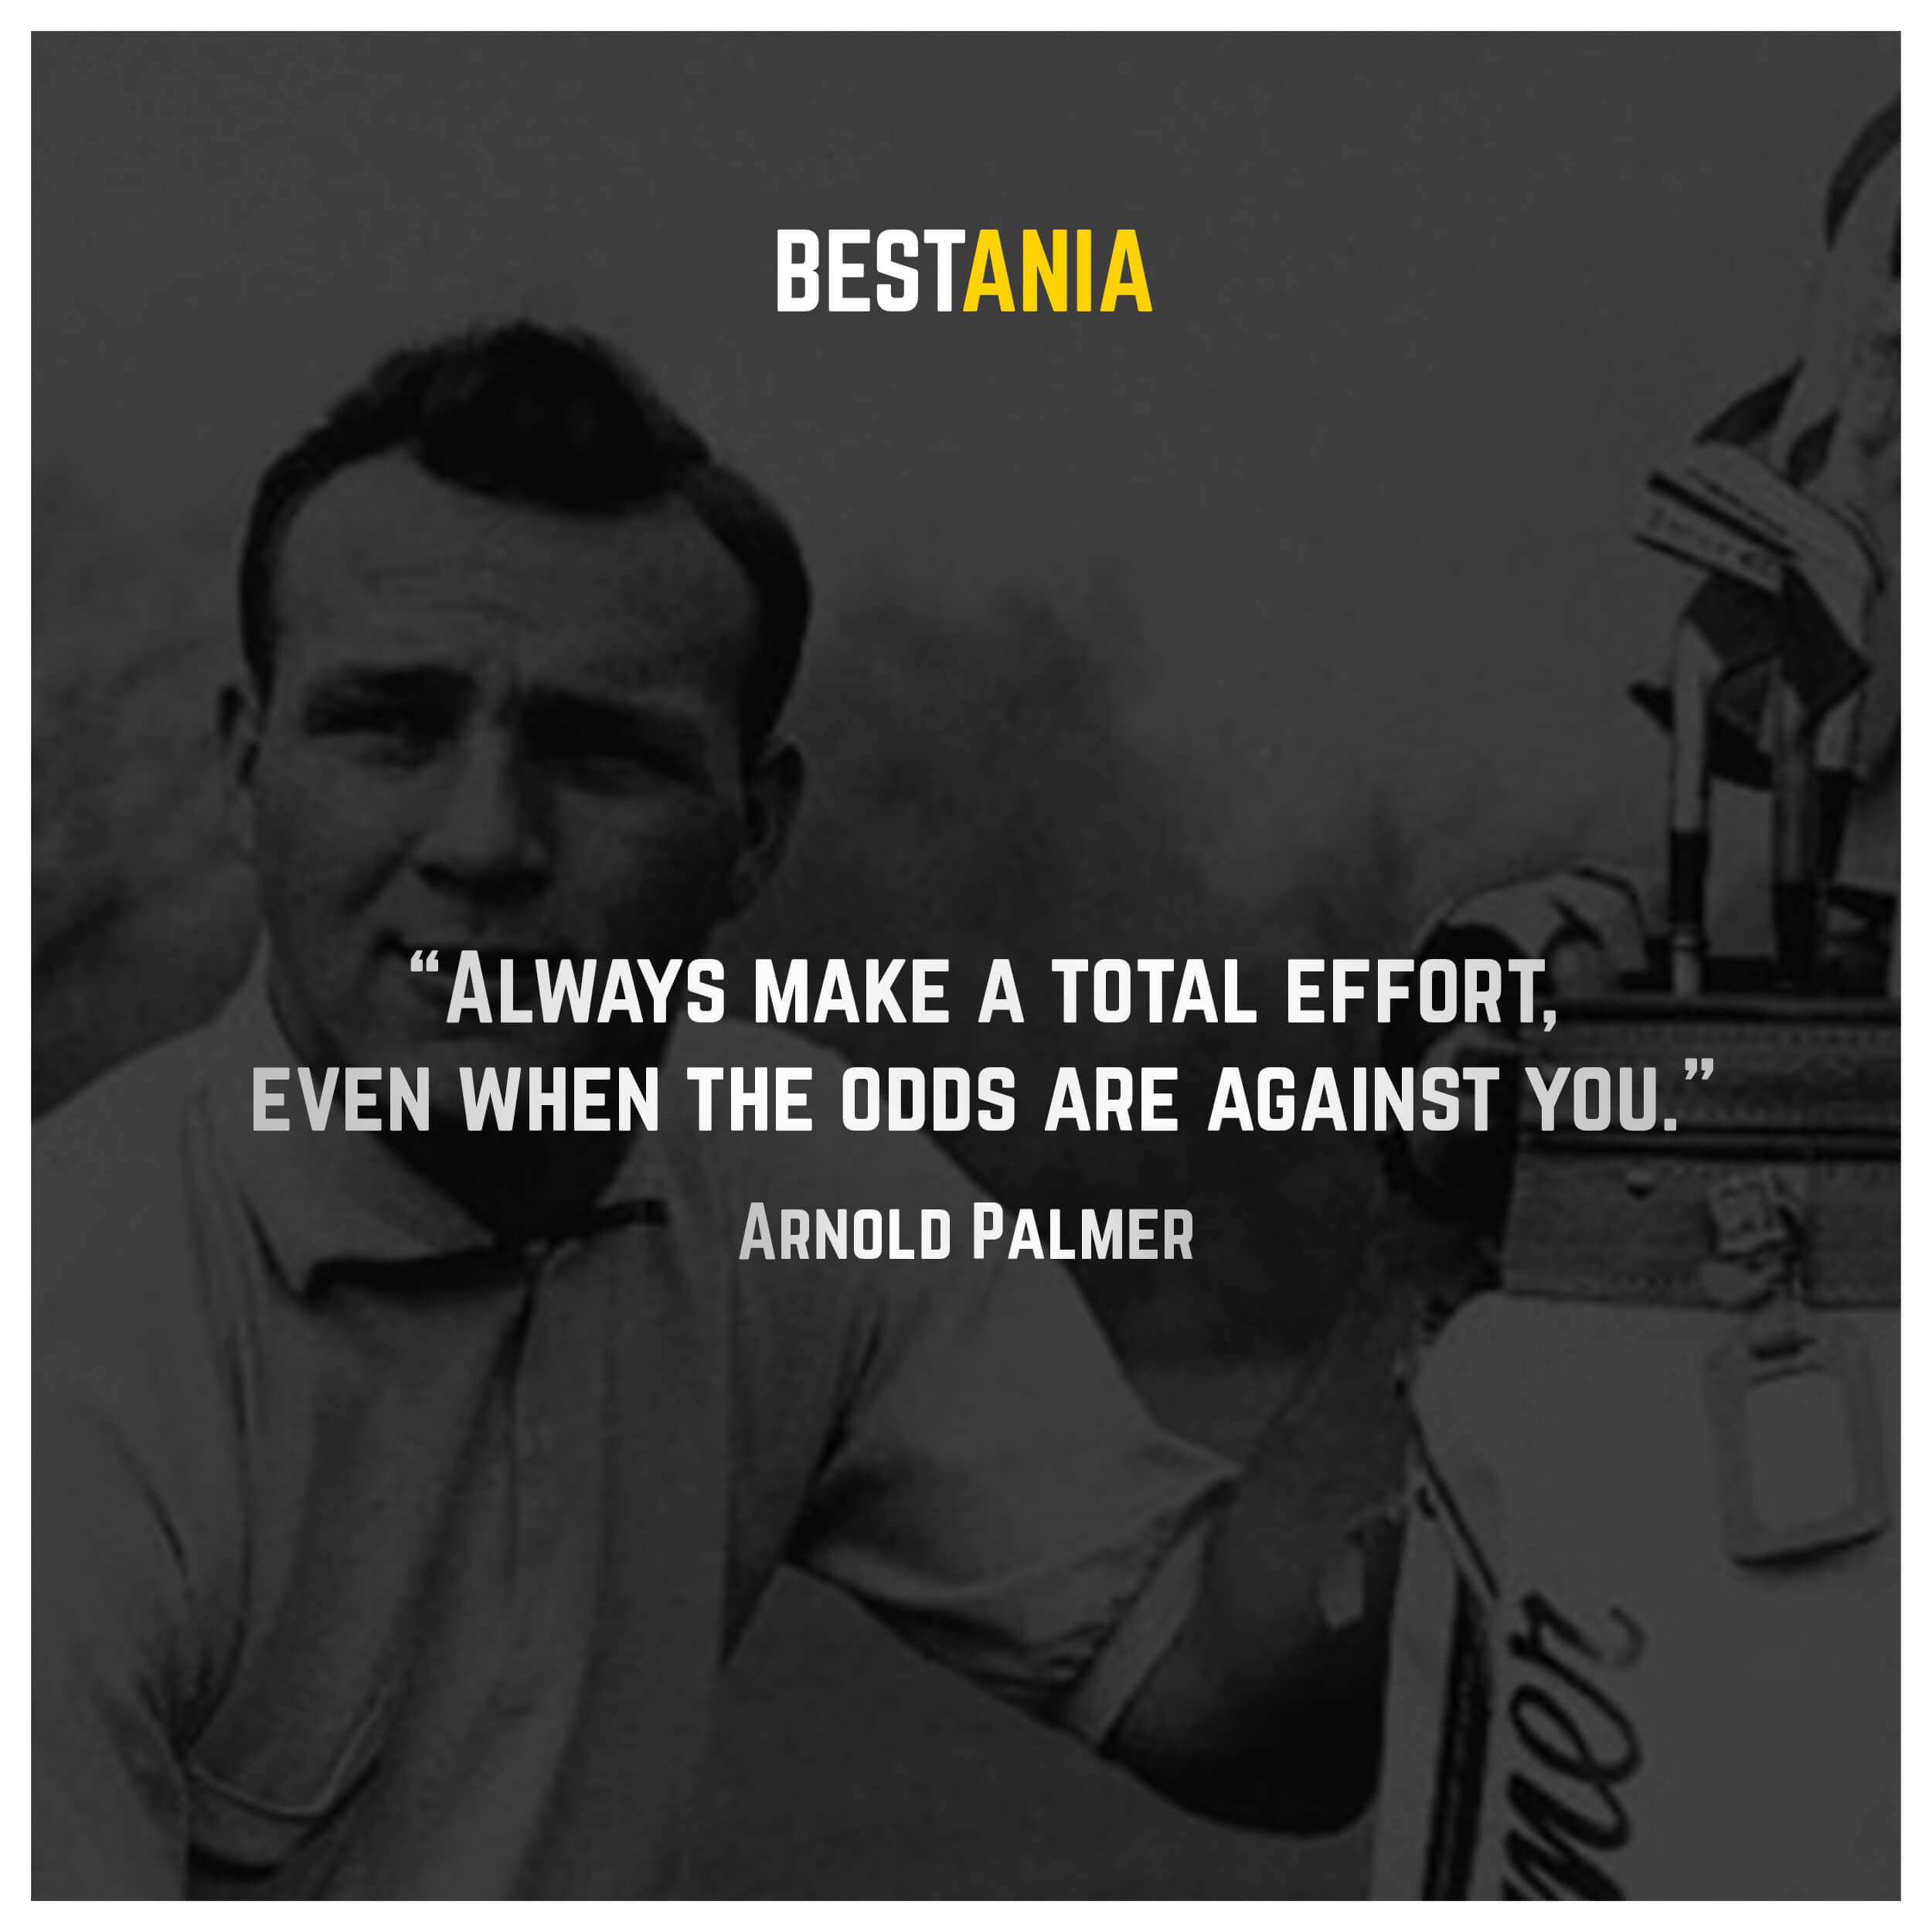 """Always make a total effort, even when the odds are against you."" – Arnold Palmer"